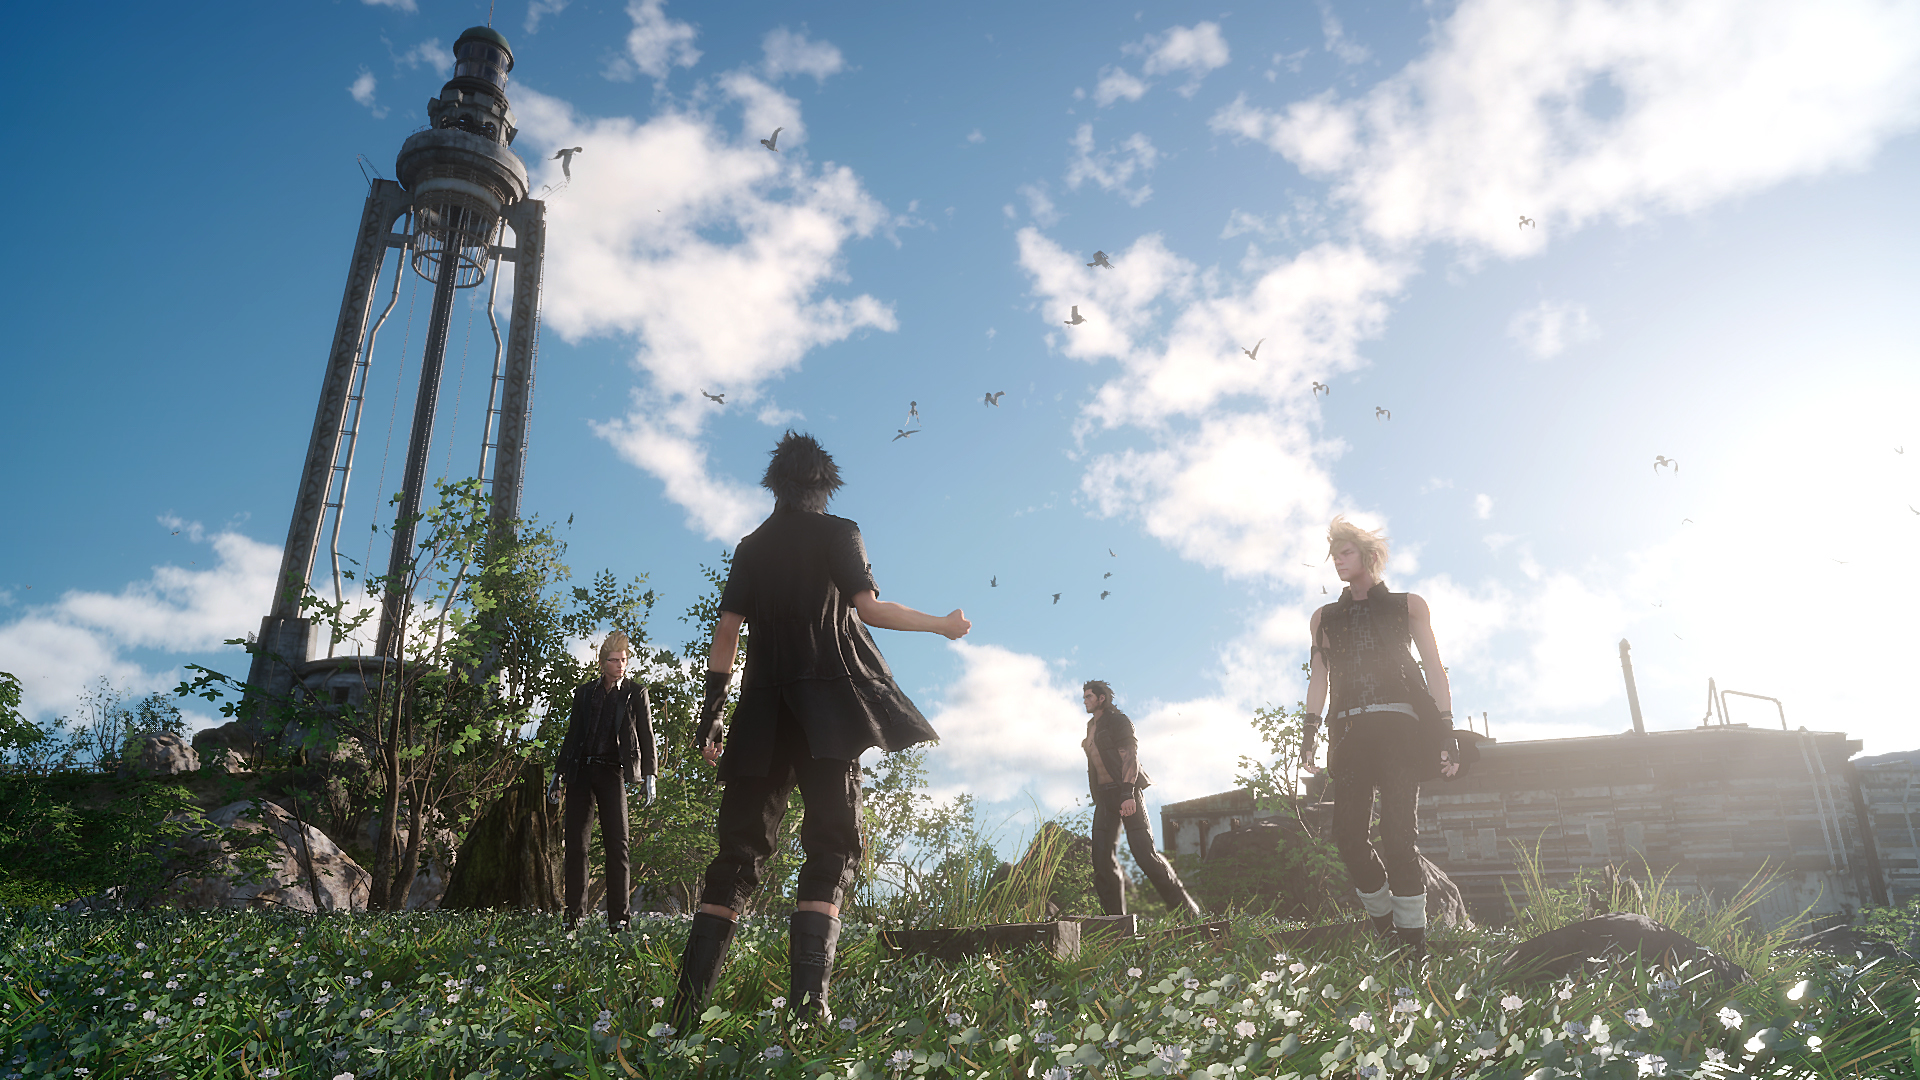 Final Fantasy Xv Final Fantasy Hd Wallpapers Desktop